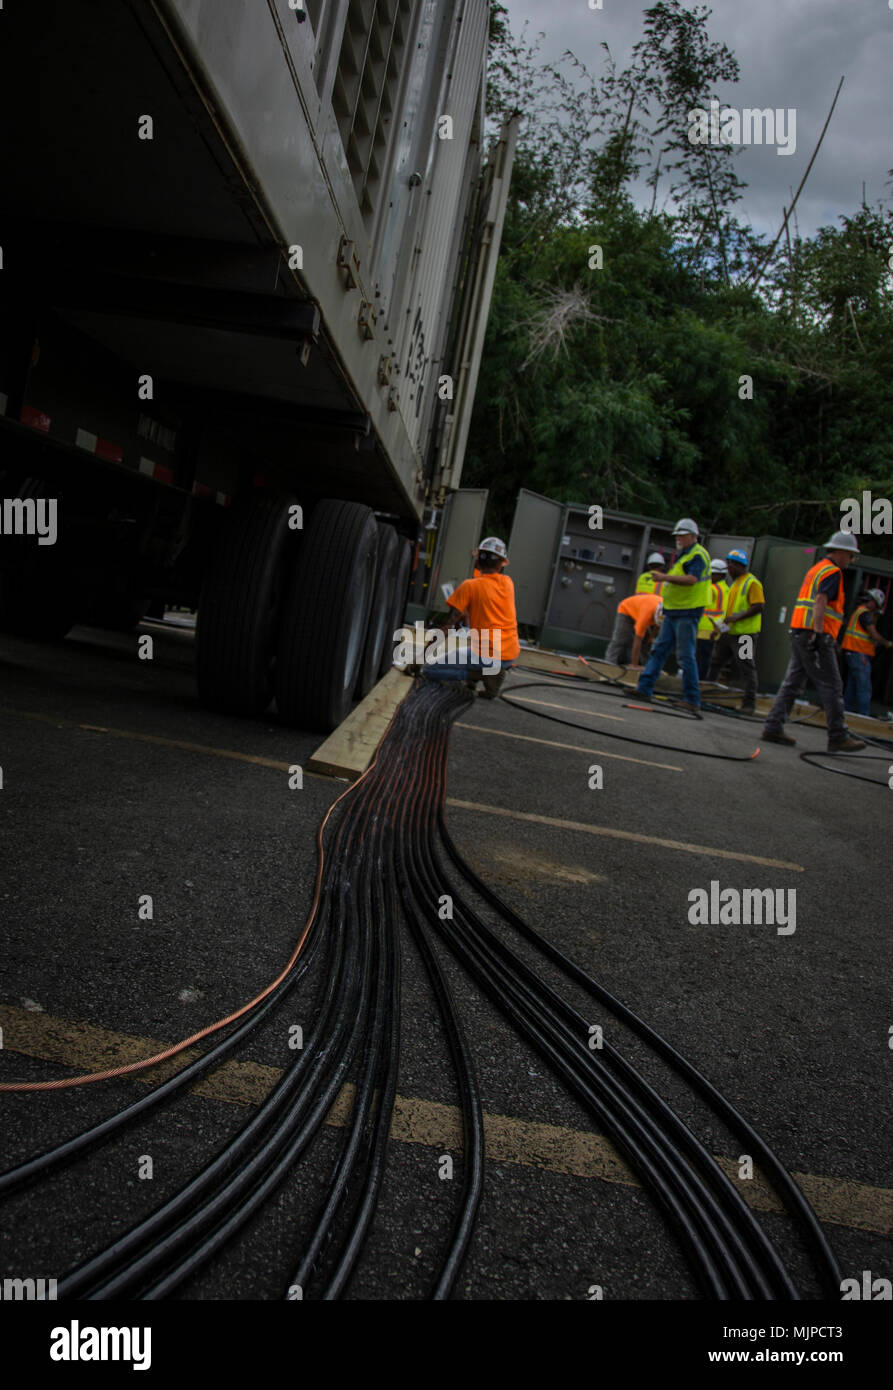 Contractors work to install a micro grid in Patillas on Dec. 17, 2017. The micro grid concept brings approximately 5 megawatts of power directly into the existing infrastructure in the area, bringing electricity to nearby buildings. The concept is significant in that it is a temporary power mission – usually intended to support critical infrastructure during an emergency – bringing electricity to residents and businesses. The installation – the second micro grid installed on the island – will be operational by midweek, with the third set to open in nearby Maunabo shortly after. - Stock Image